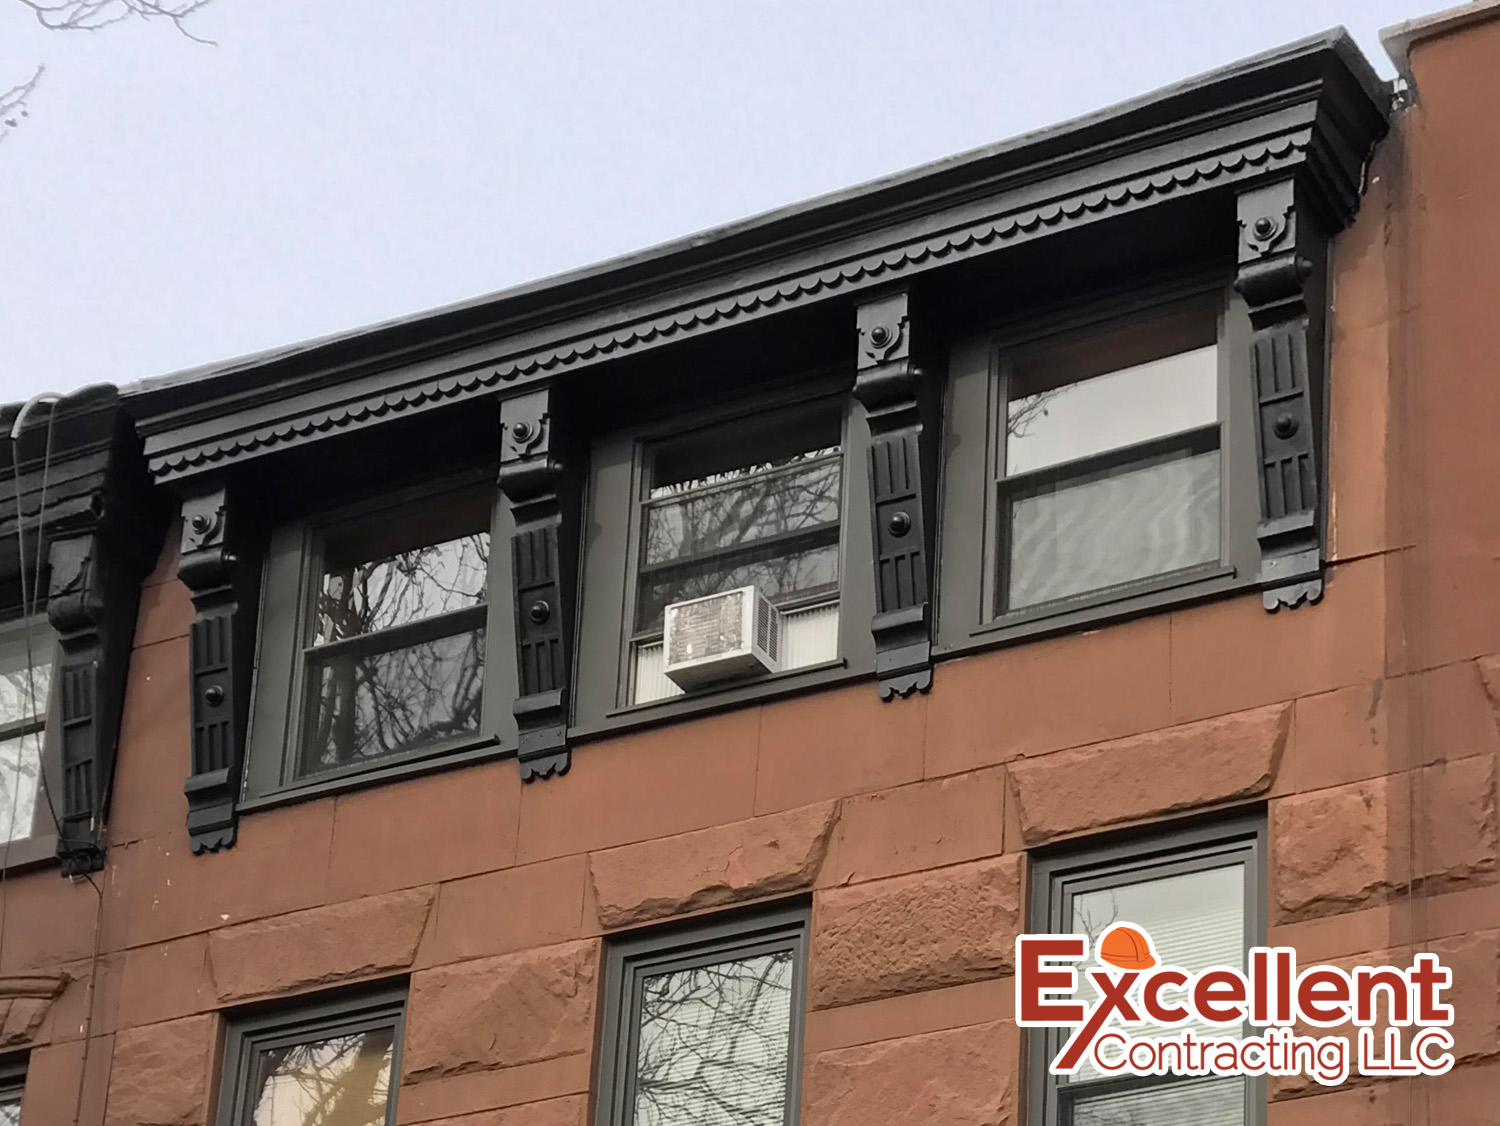 Excellent Contracting LLC  – Leading Brownstone Restoration